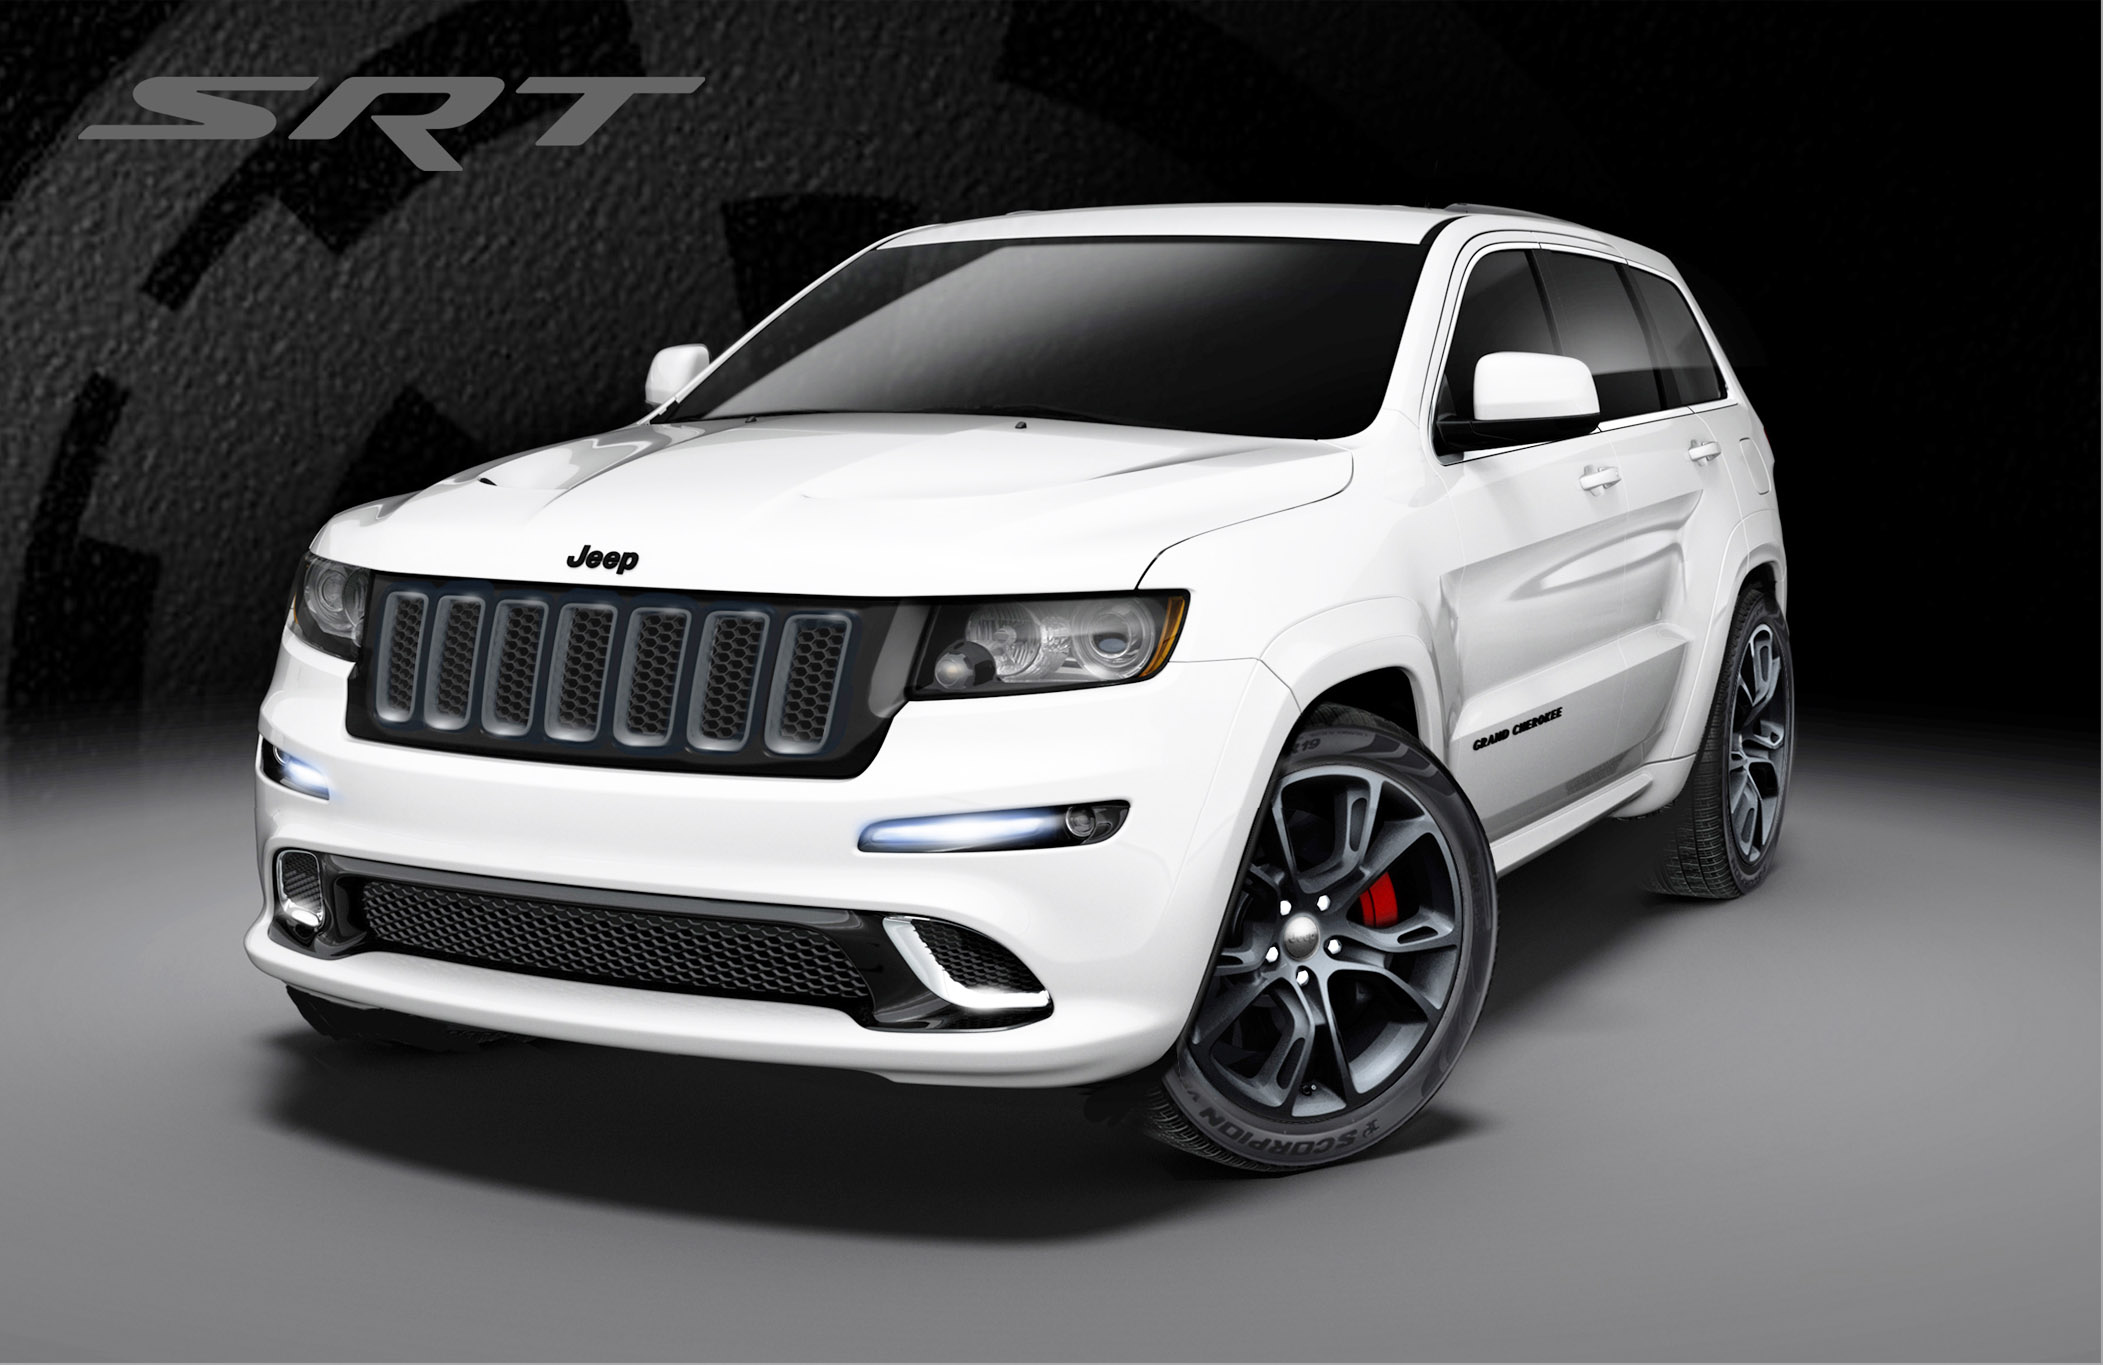 2013 jeep grand cherokee srt8 video. Black Bedroom Furniture Sets. Home Design Ideas